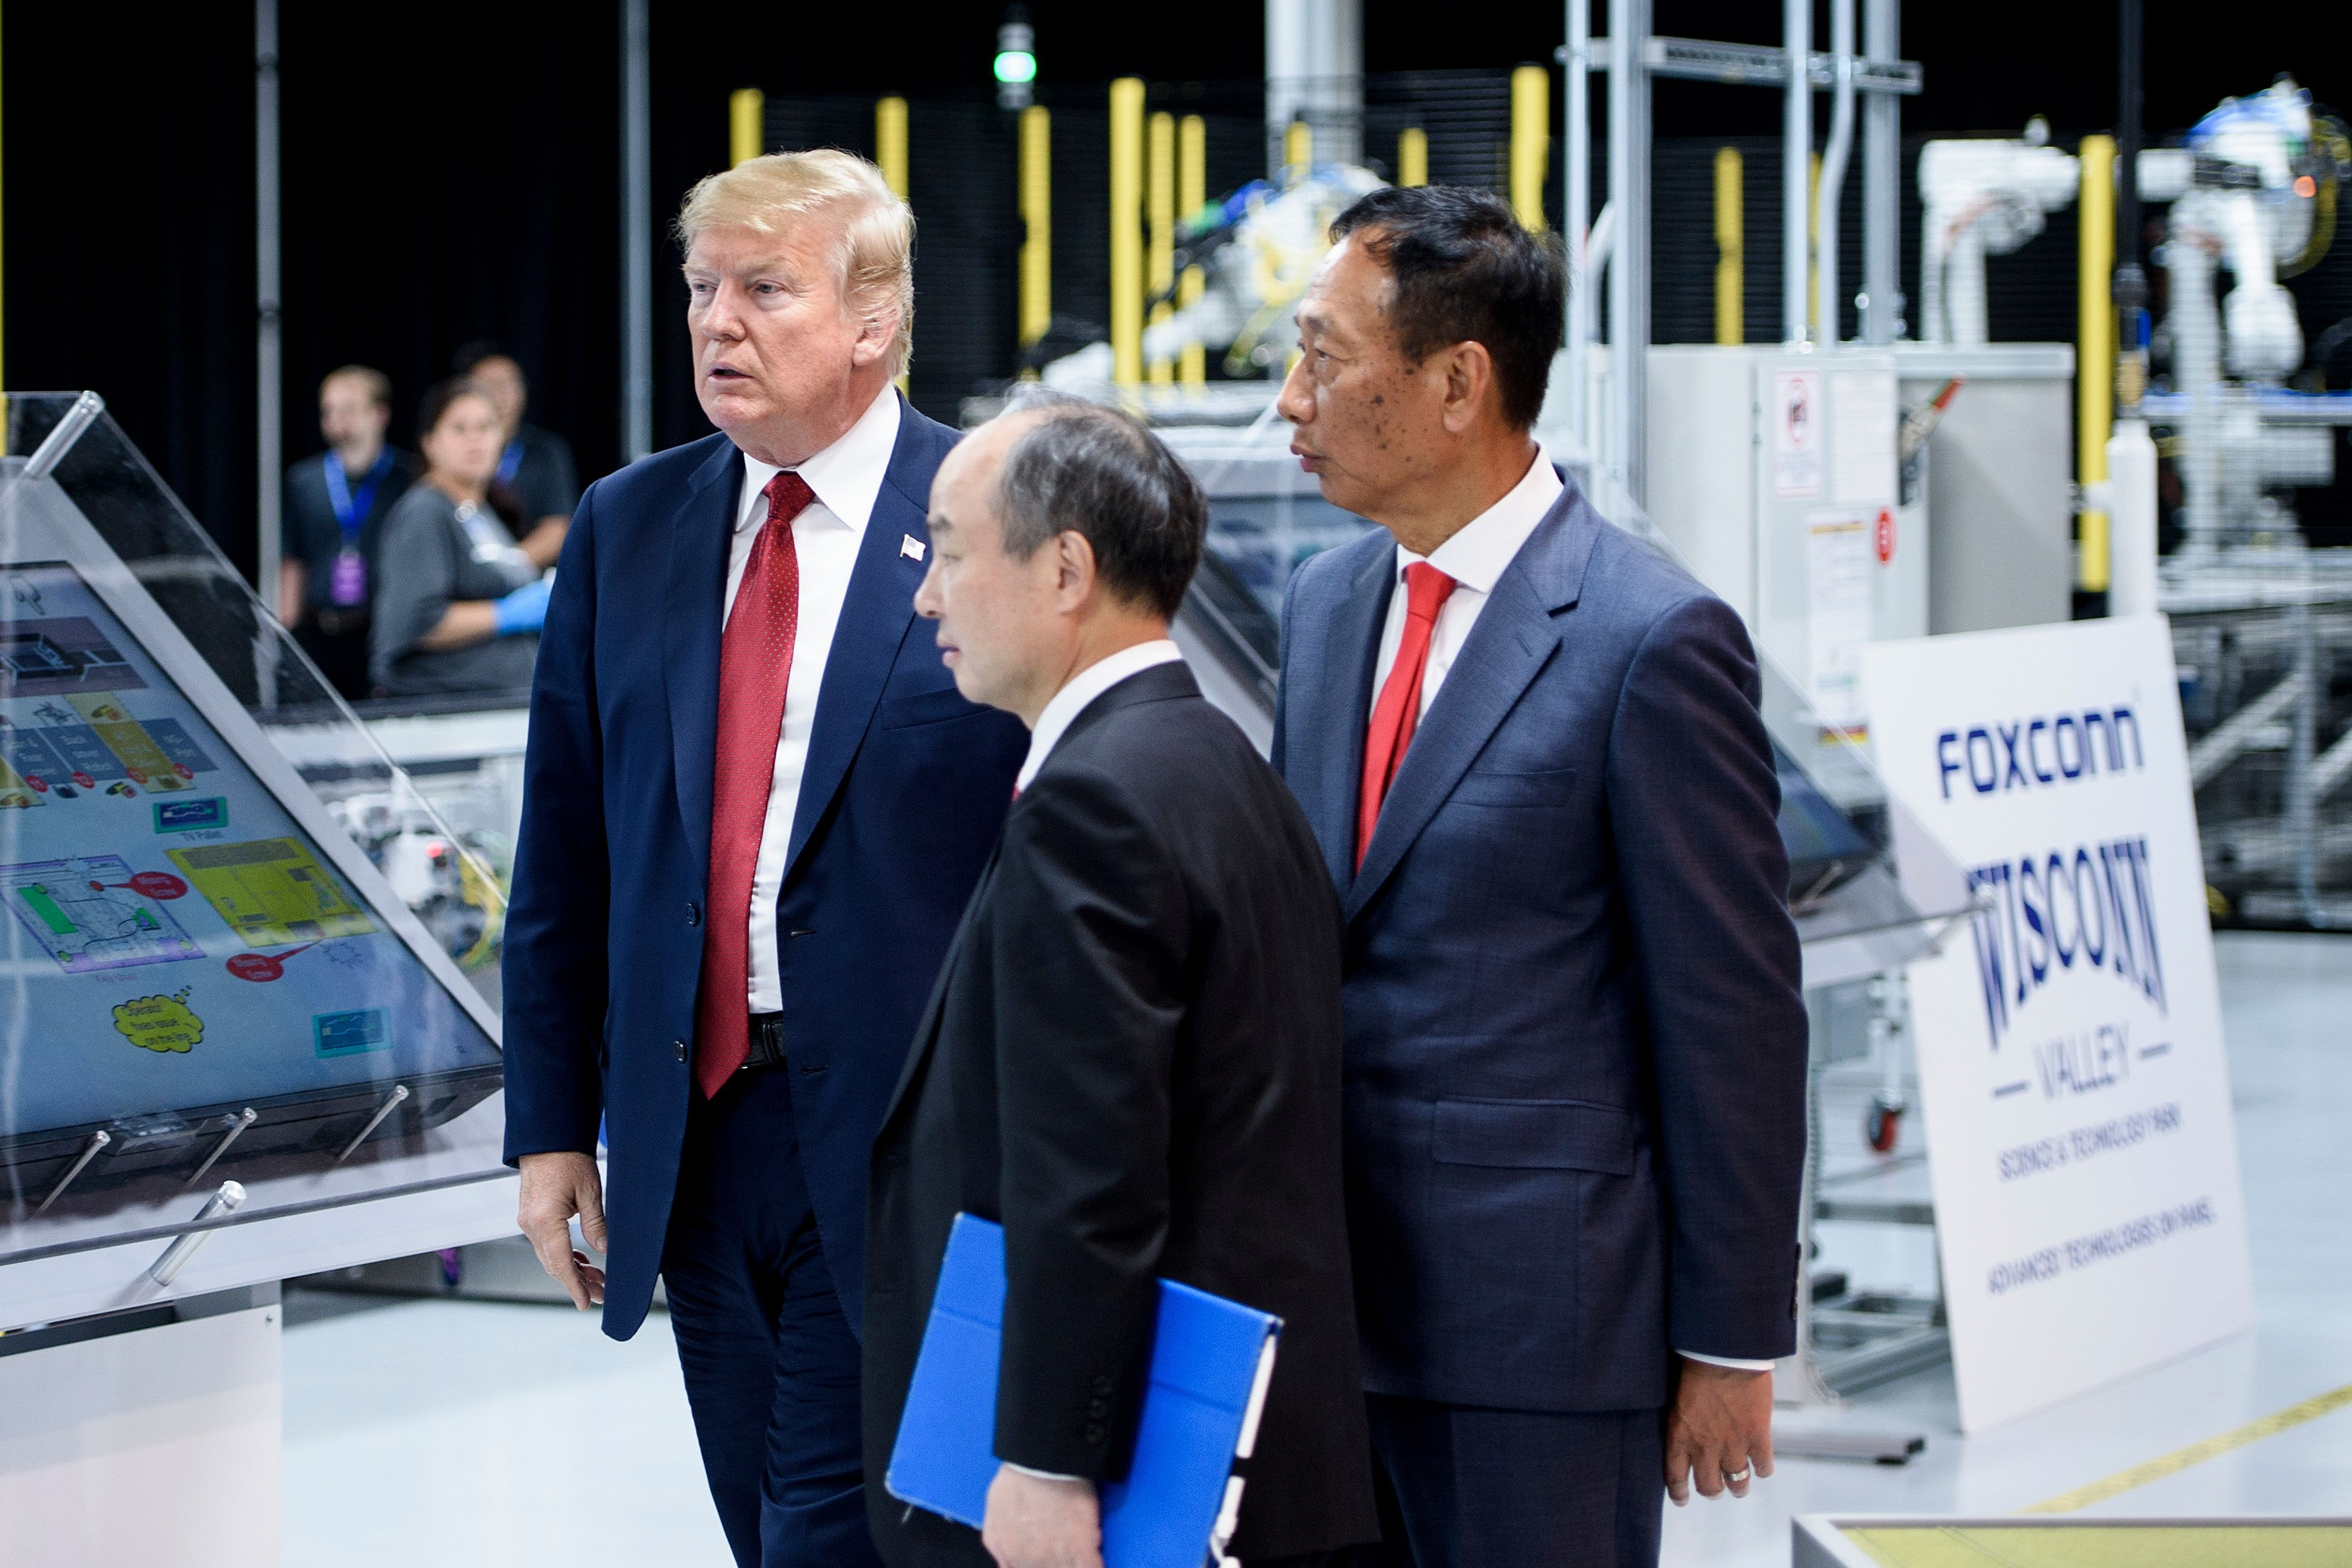 Wisconsin governor says Foxconn is again likely to miss job targets